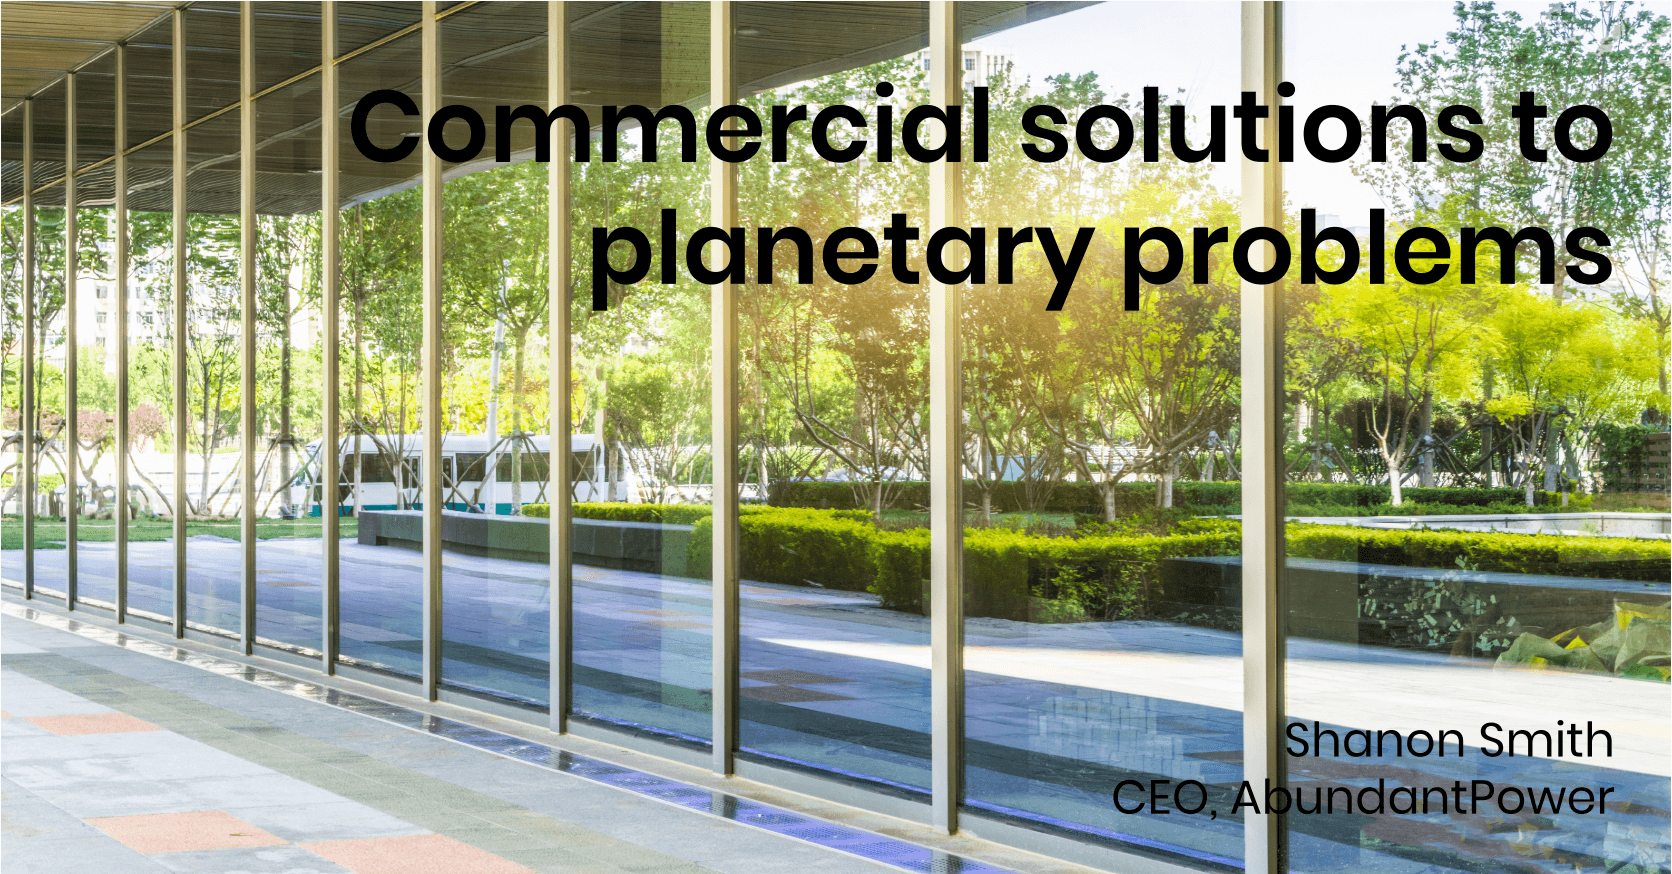 Commercial Solutions for Planetary Problems